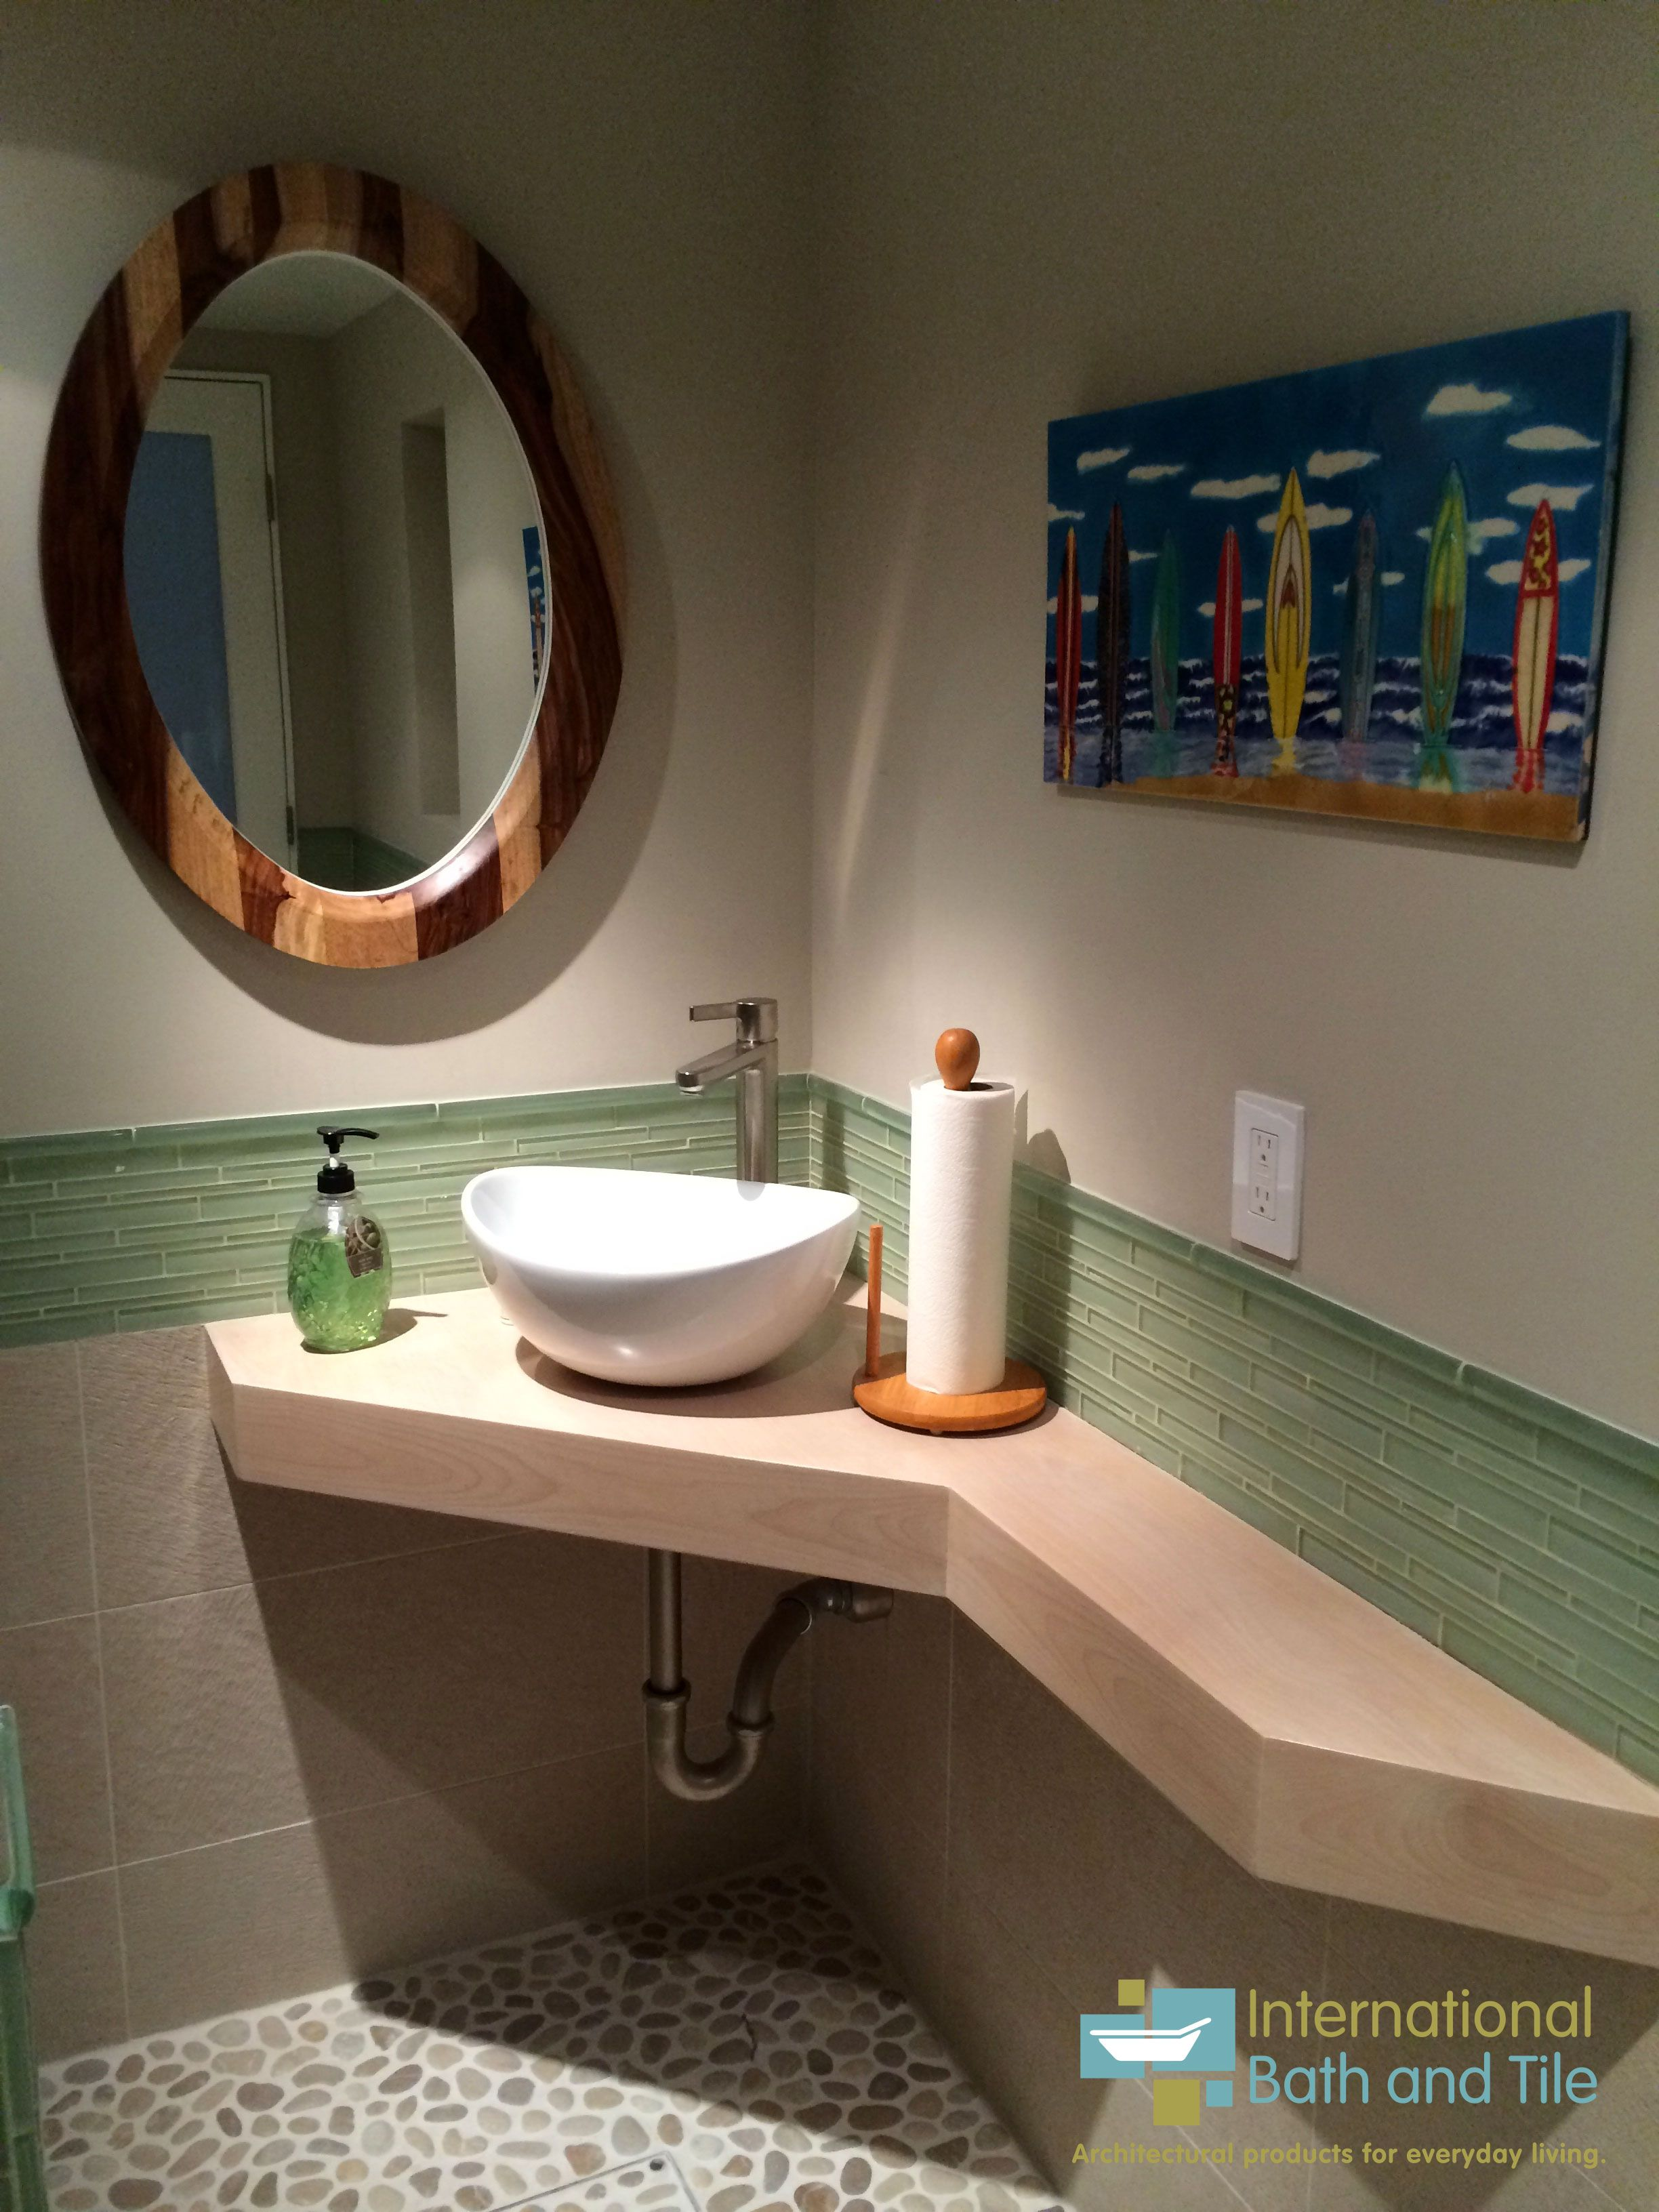 INTERNATIONAL BATH AND TILE | SAND DIEGO. Look at this latest Beach ...